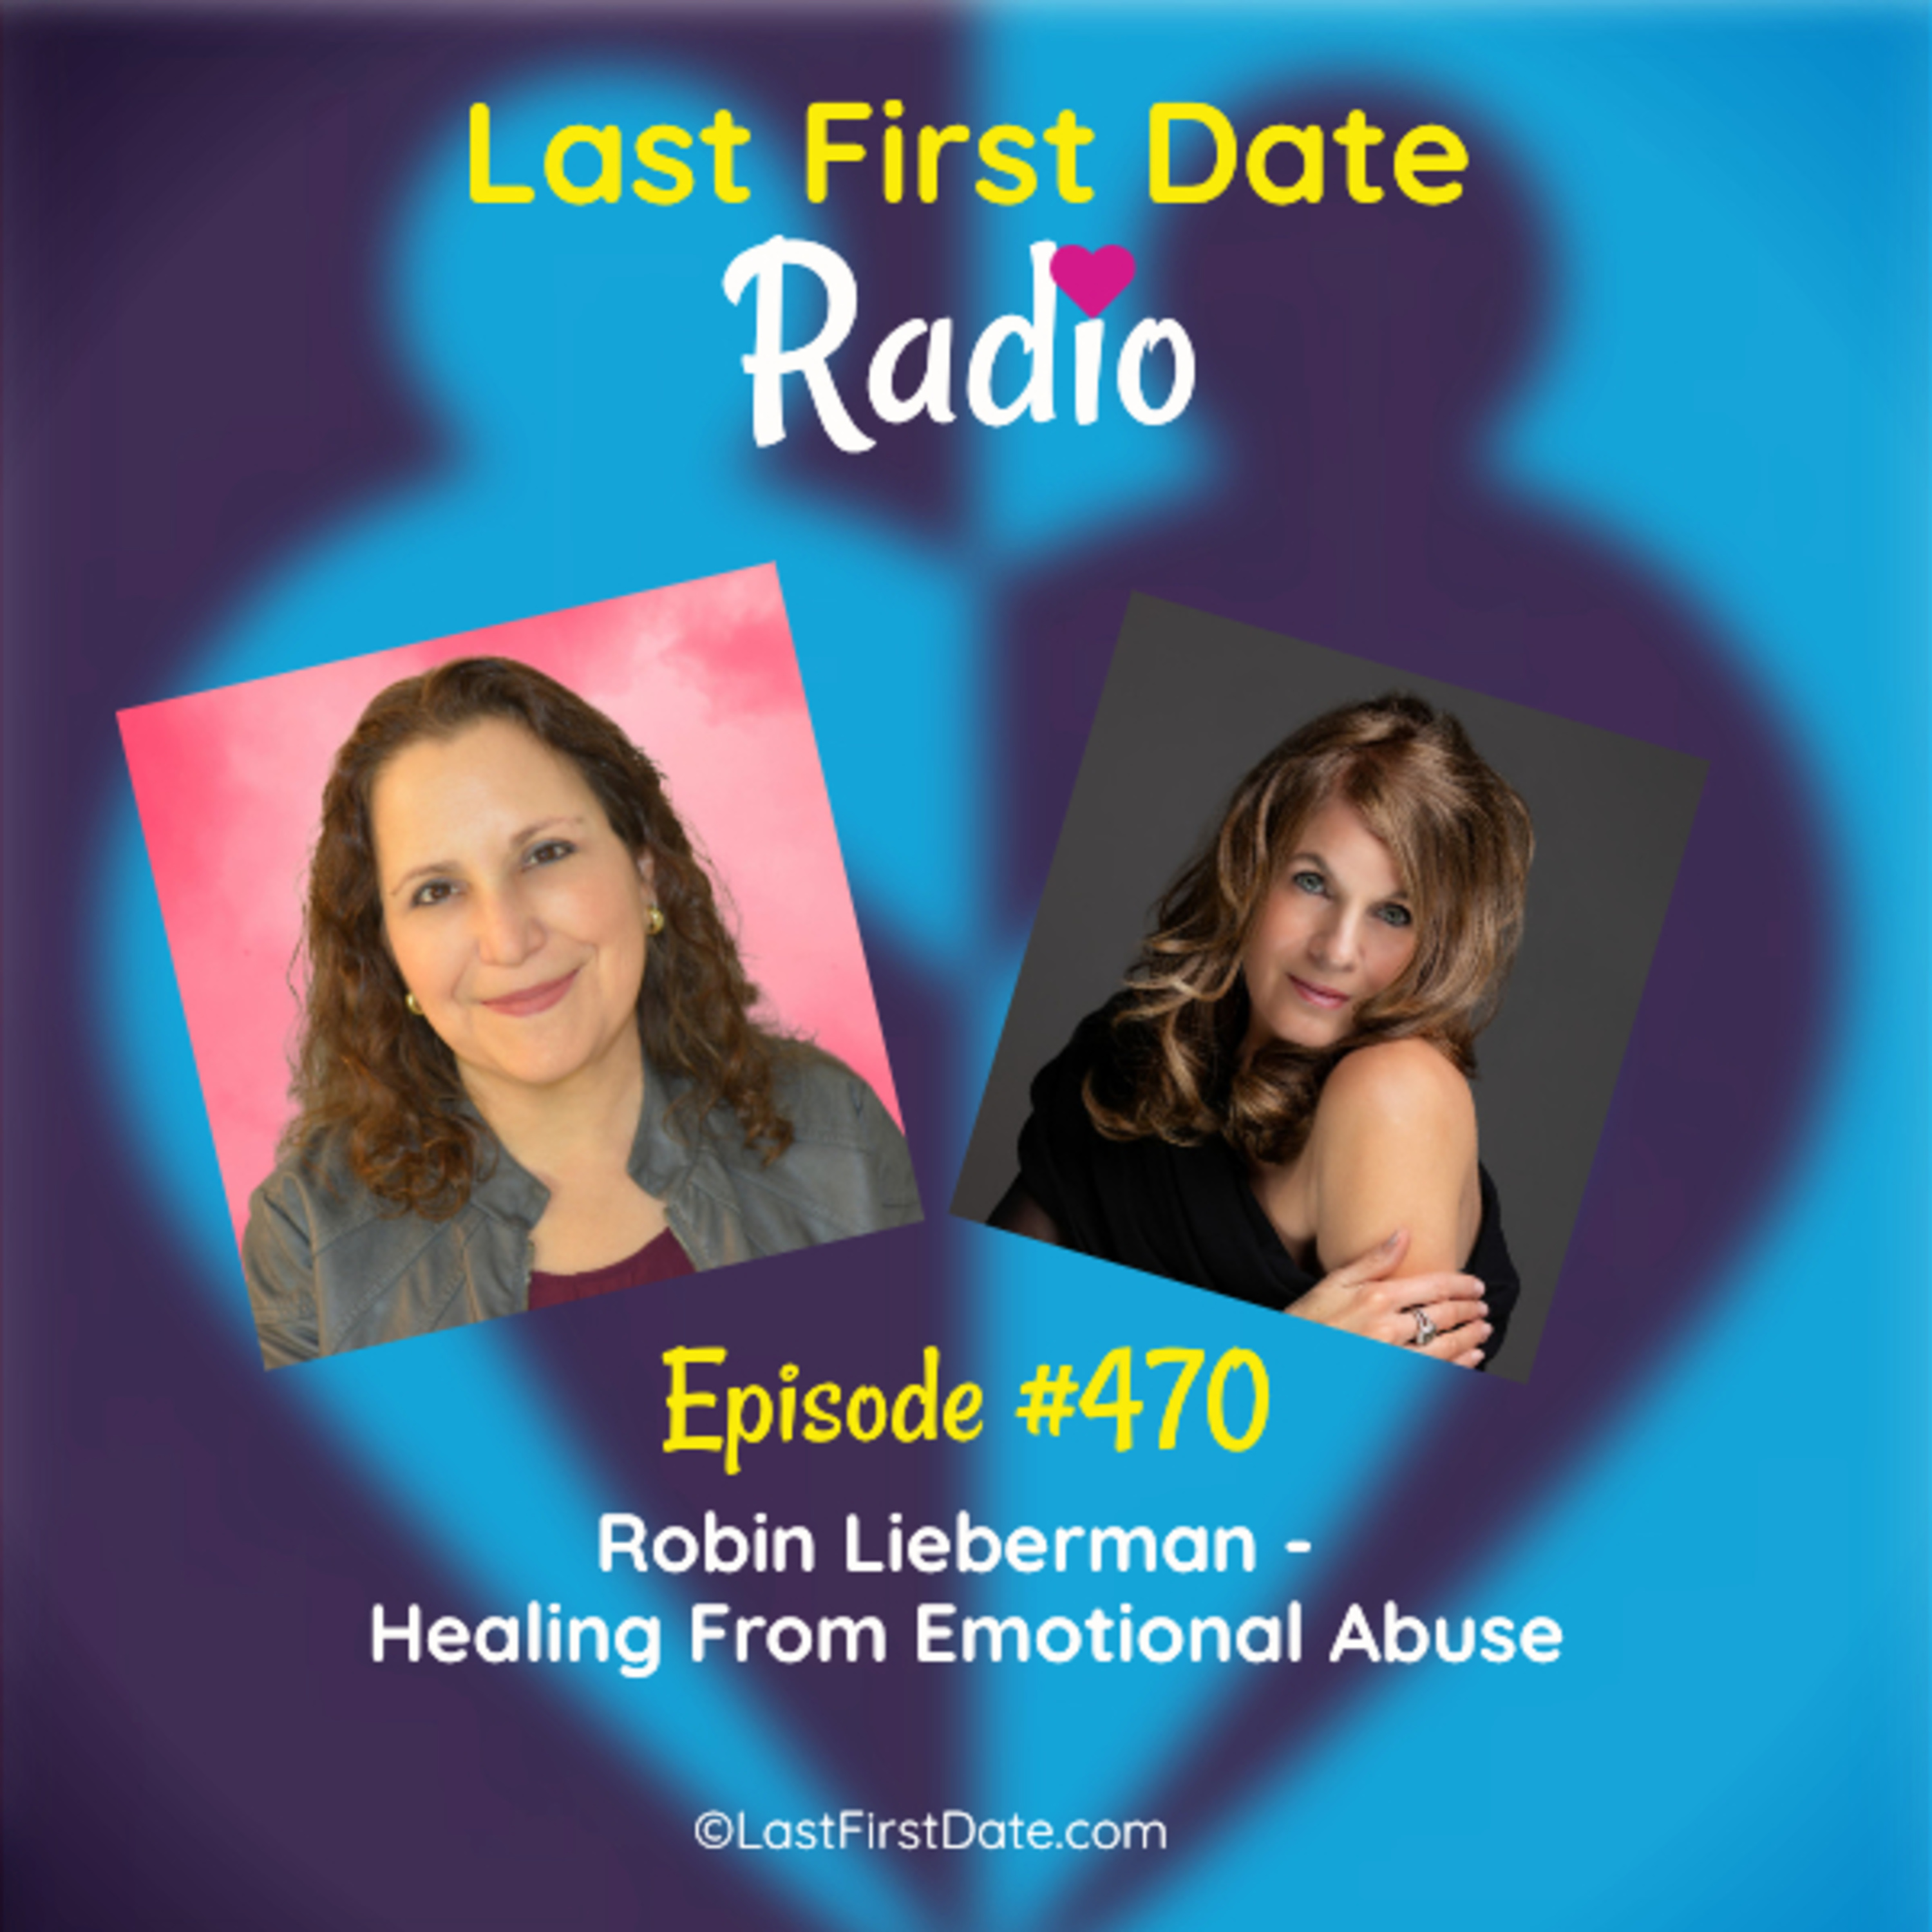 Last First Date Radio - EP 470: Robin Lieberman - Healing From Emotional Abuse